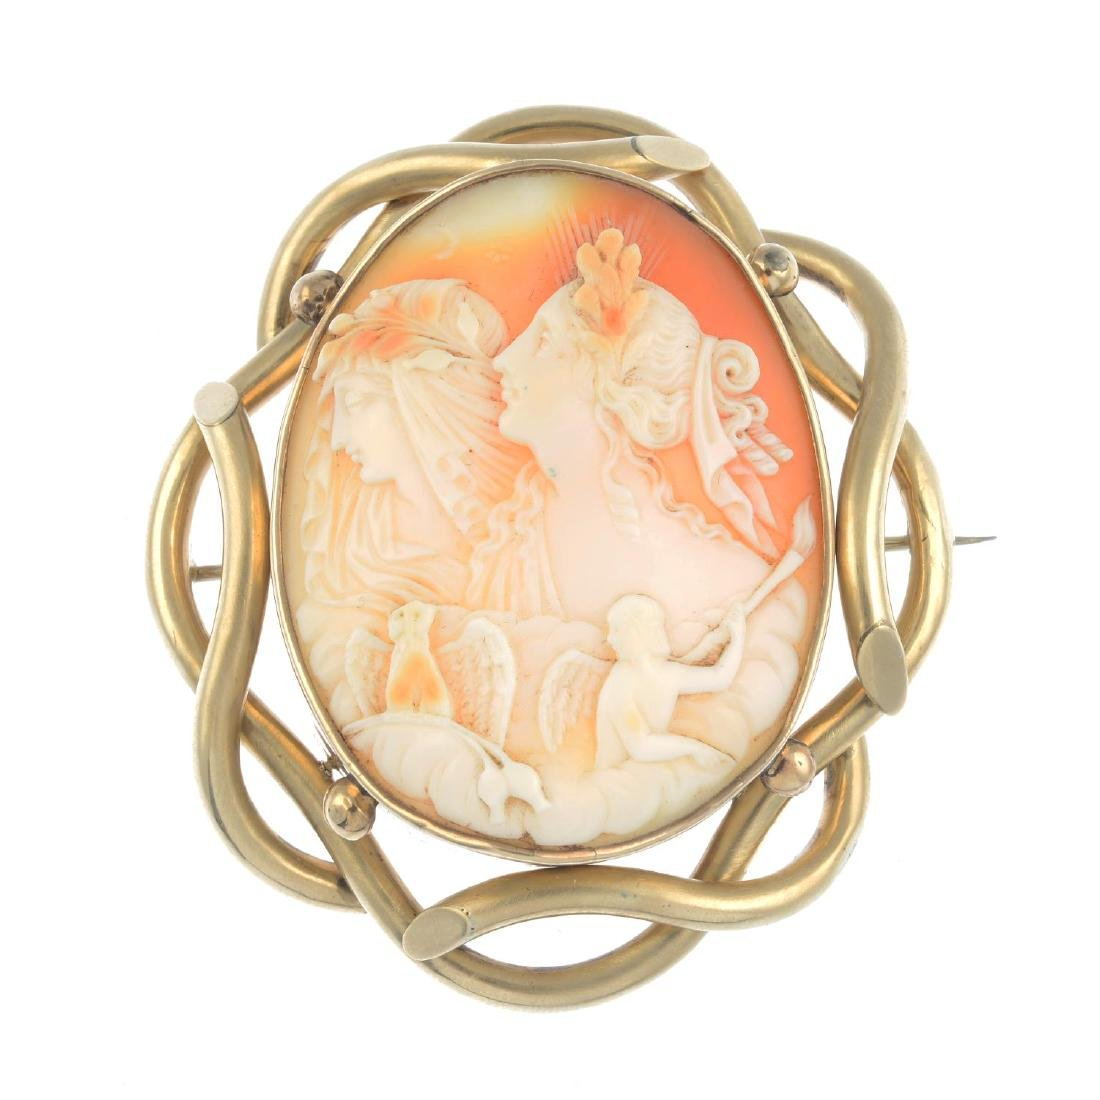 A mid Victorian gold cameo brooch. The oval shell